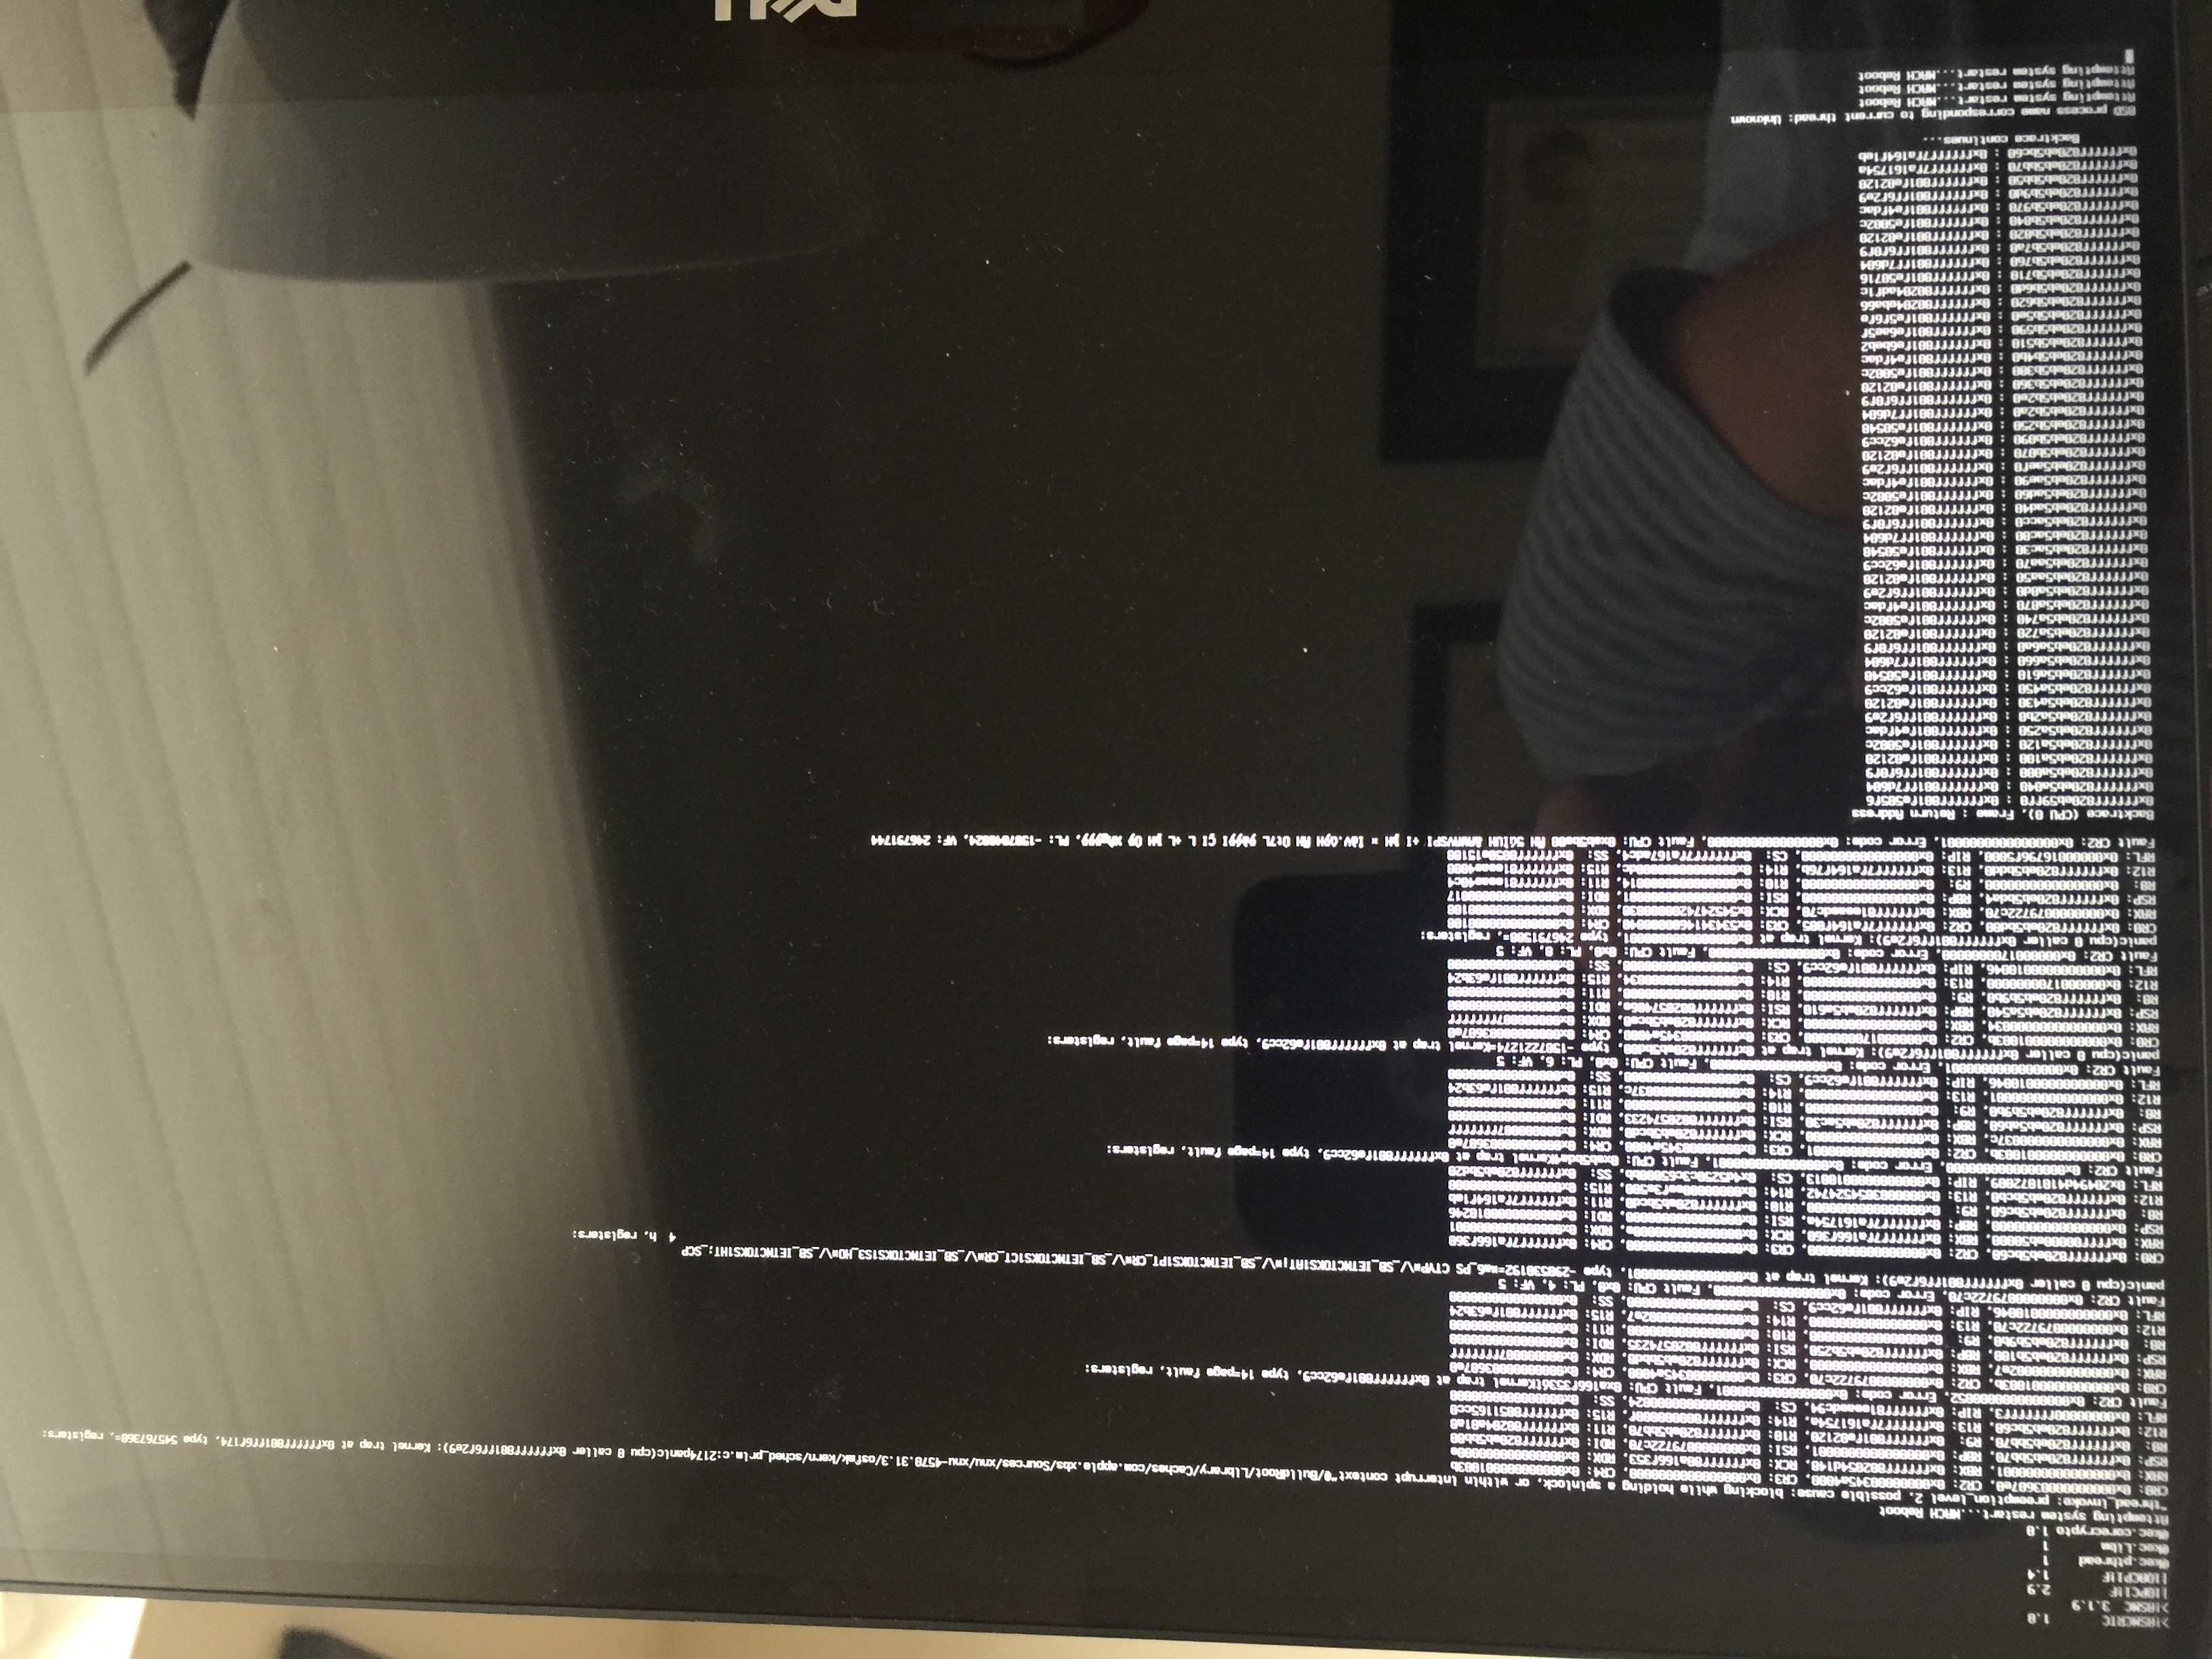 Solved] Unable to boot into High Sierra after (successful?) install